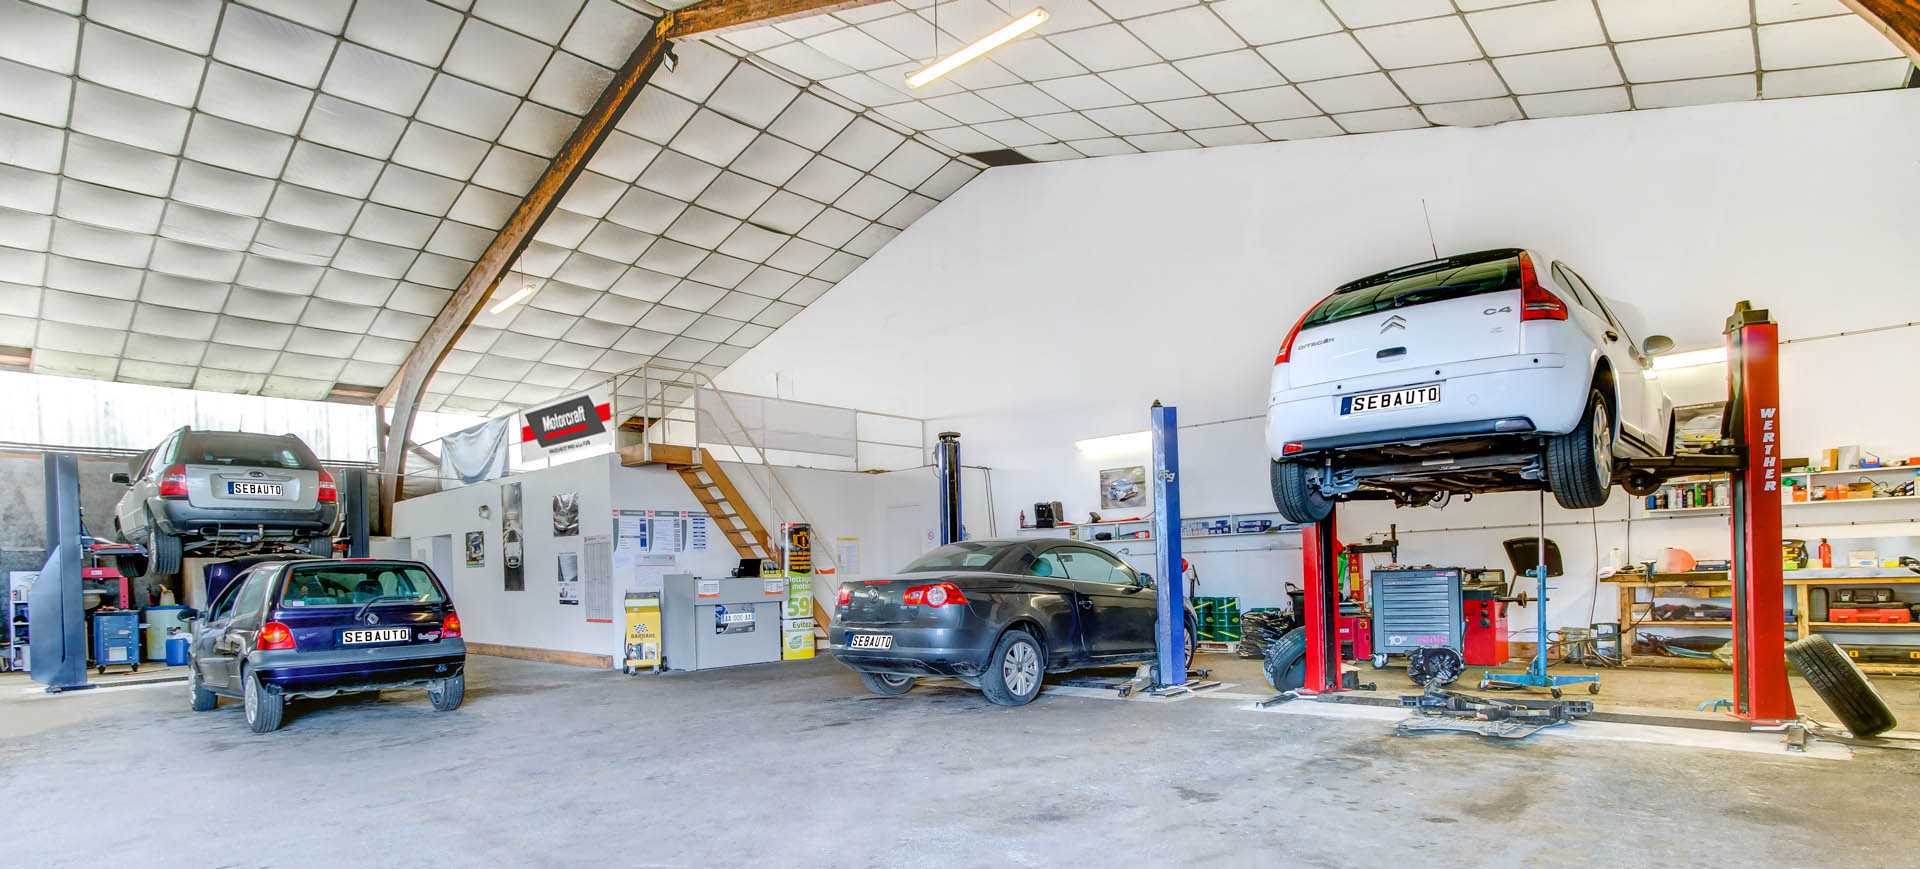 L 39 atelier garage seb auto tarnos sud landes for Reprise vehicule garage